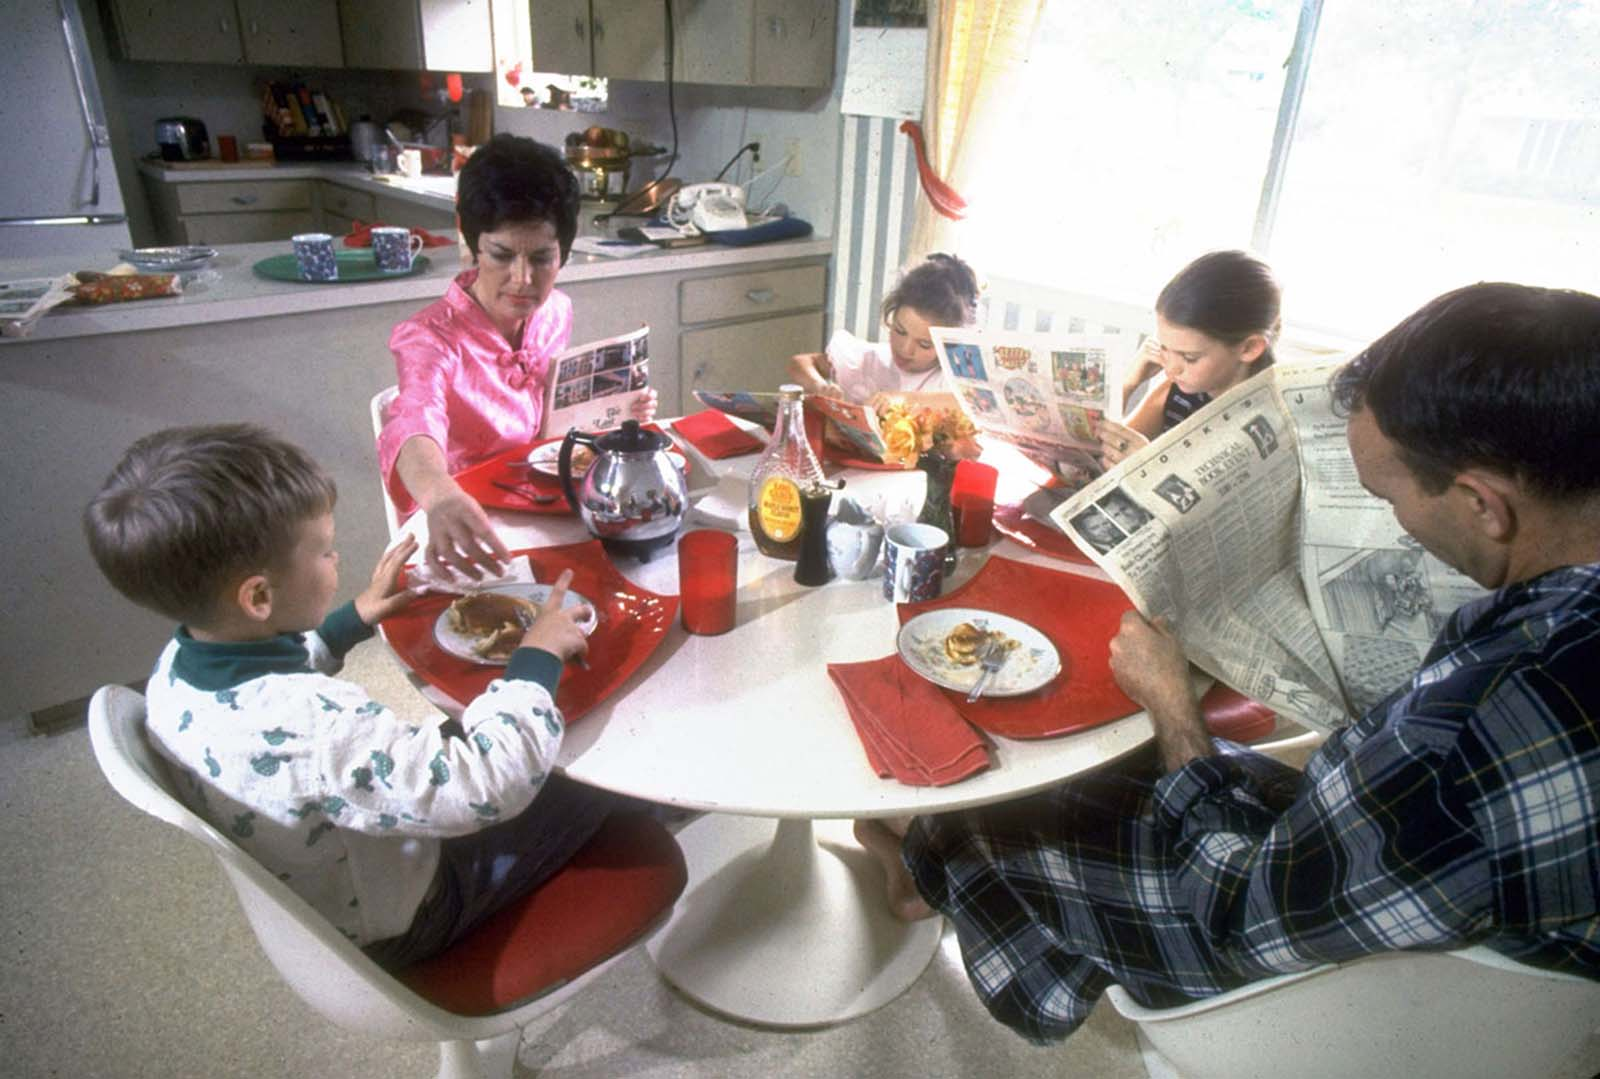 From a Life magazine series on the Apollo astronauts at home, a photo of Michael and Pat Collins and their children enjoying a relaxing pancake breakfast in March 1969.